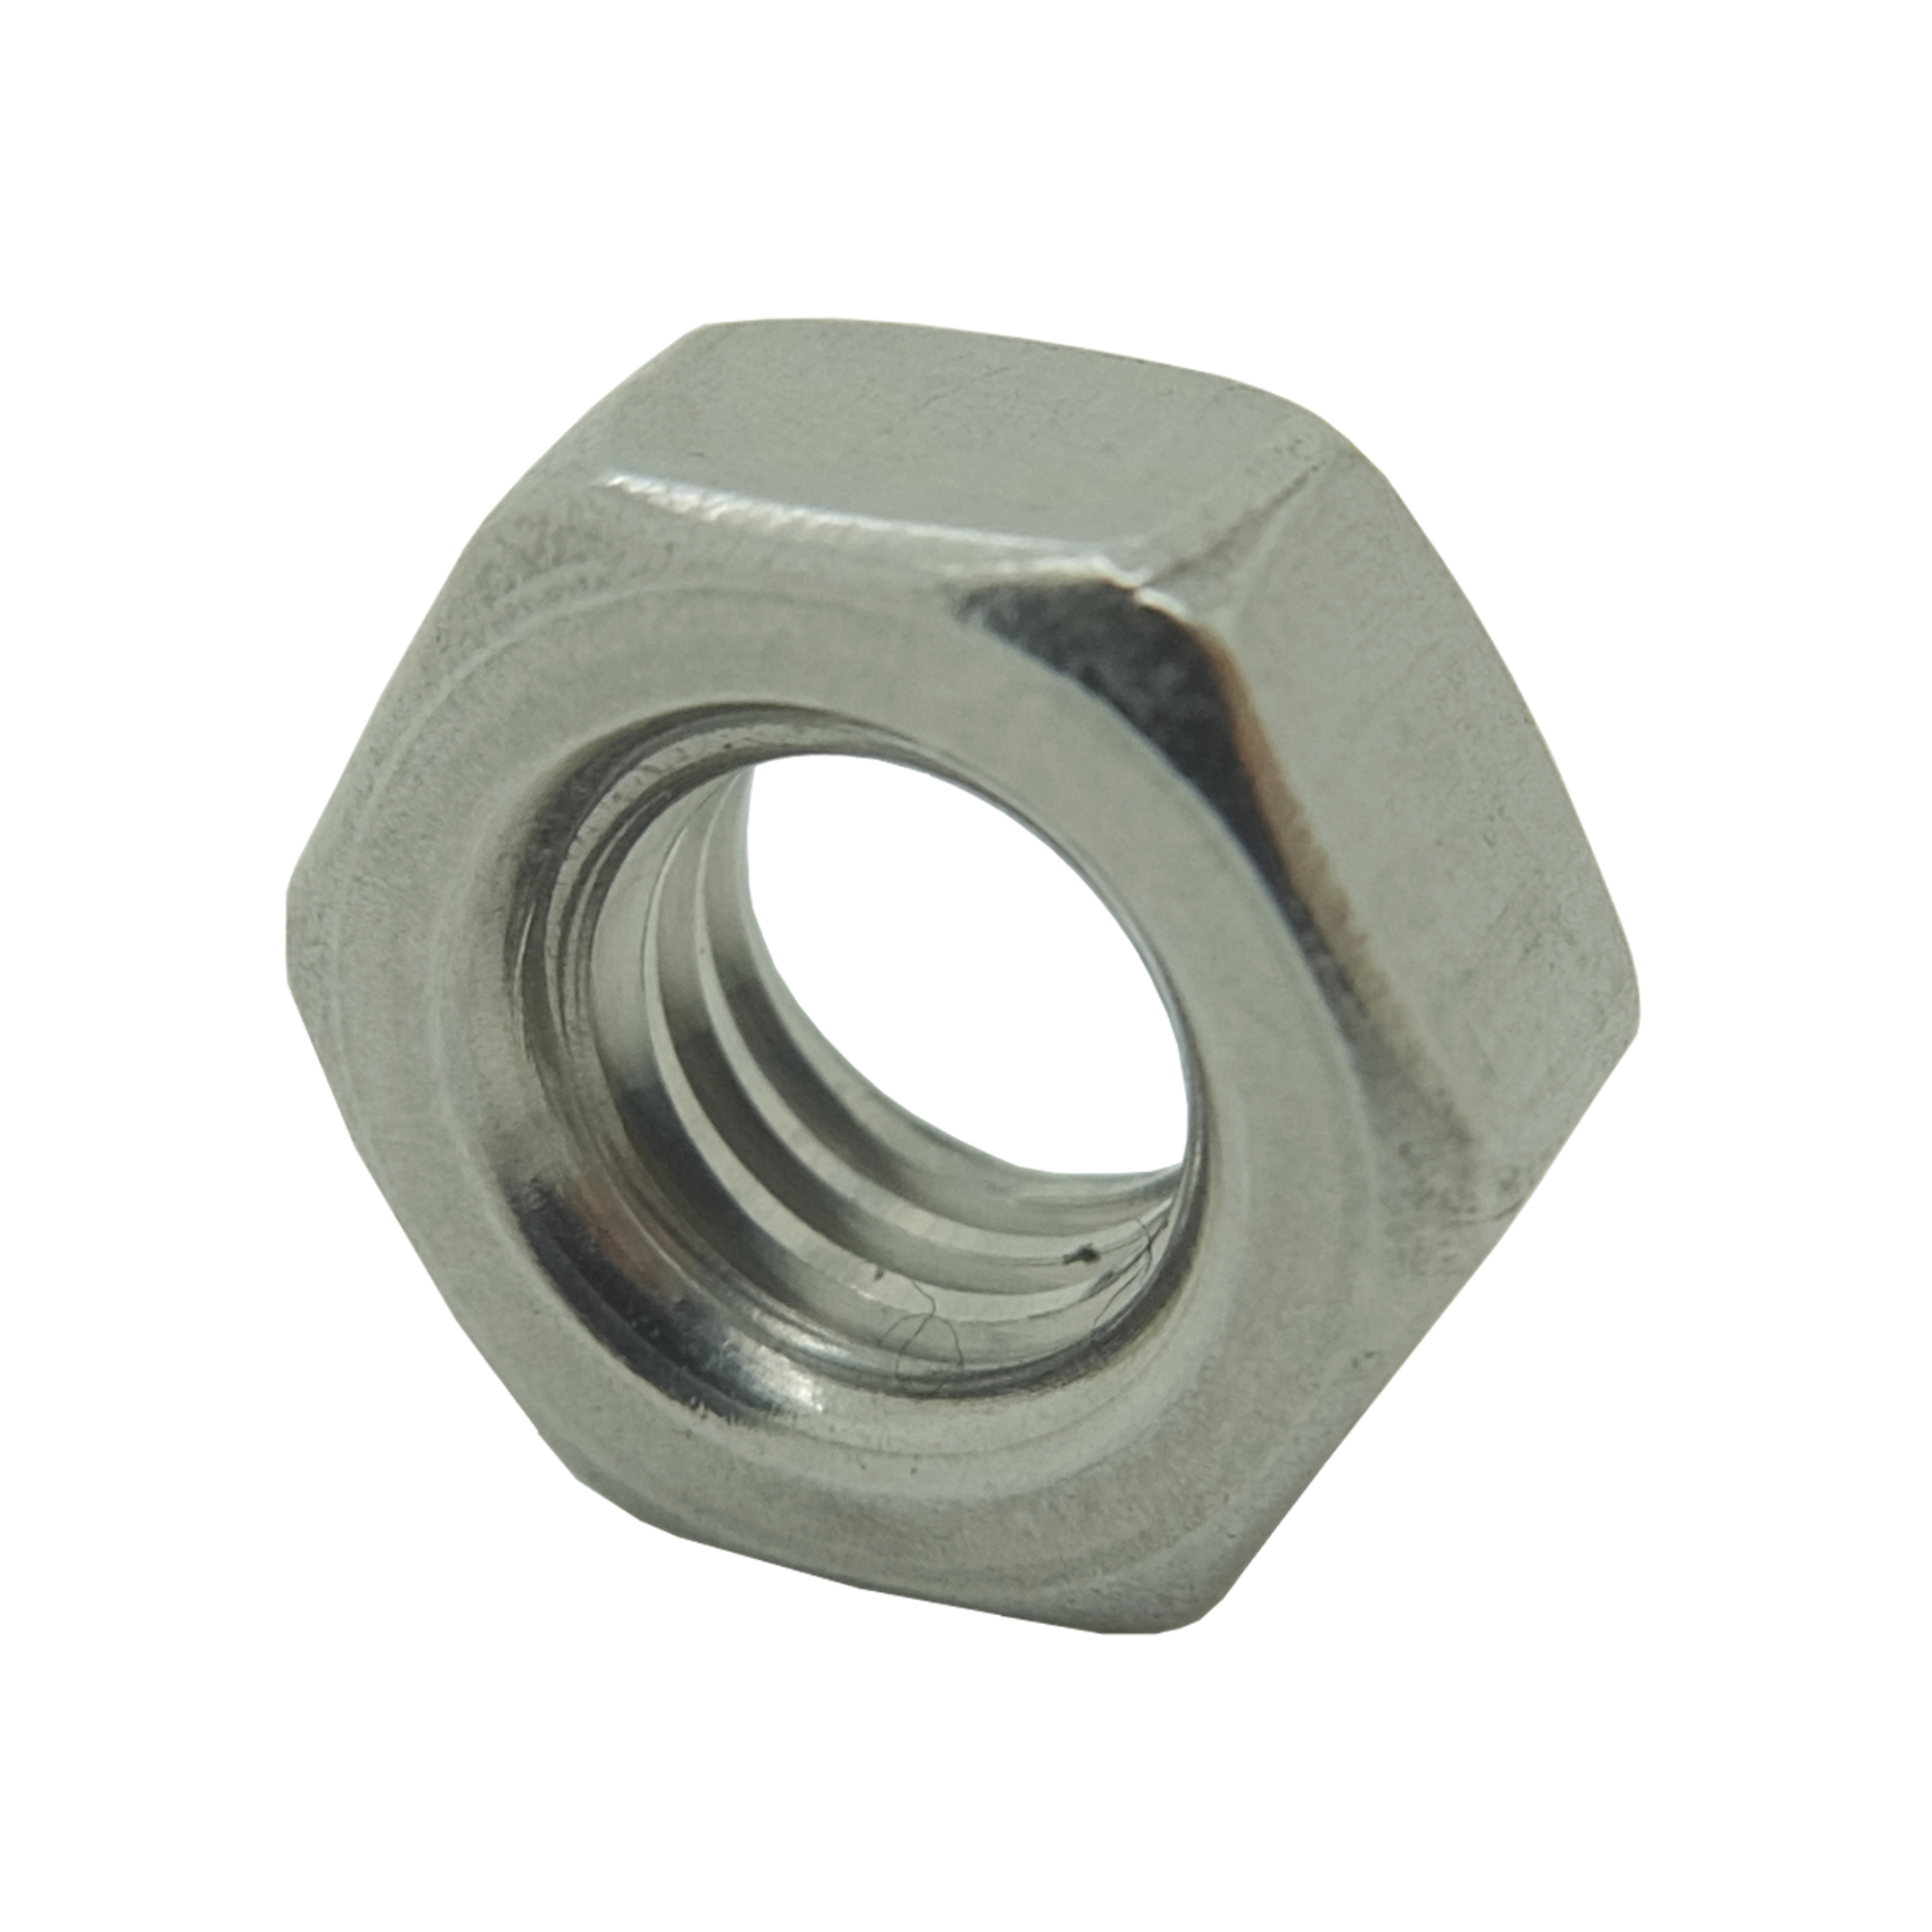 M8 LH Stainless Steel DIN 934 Hexagon Nut